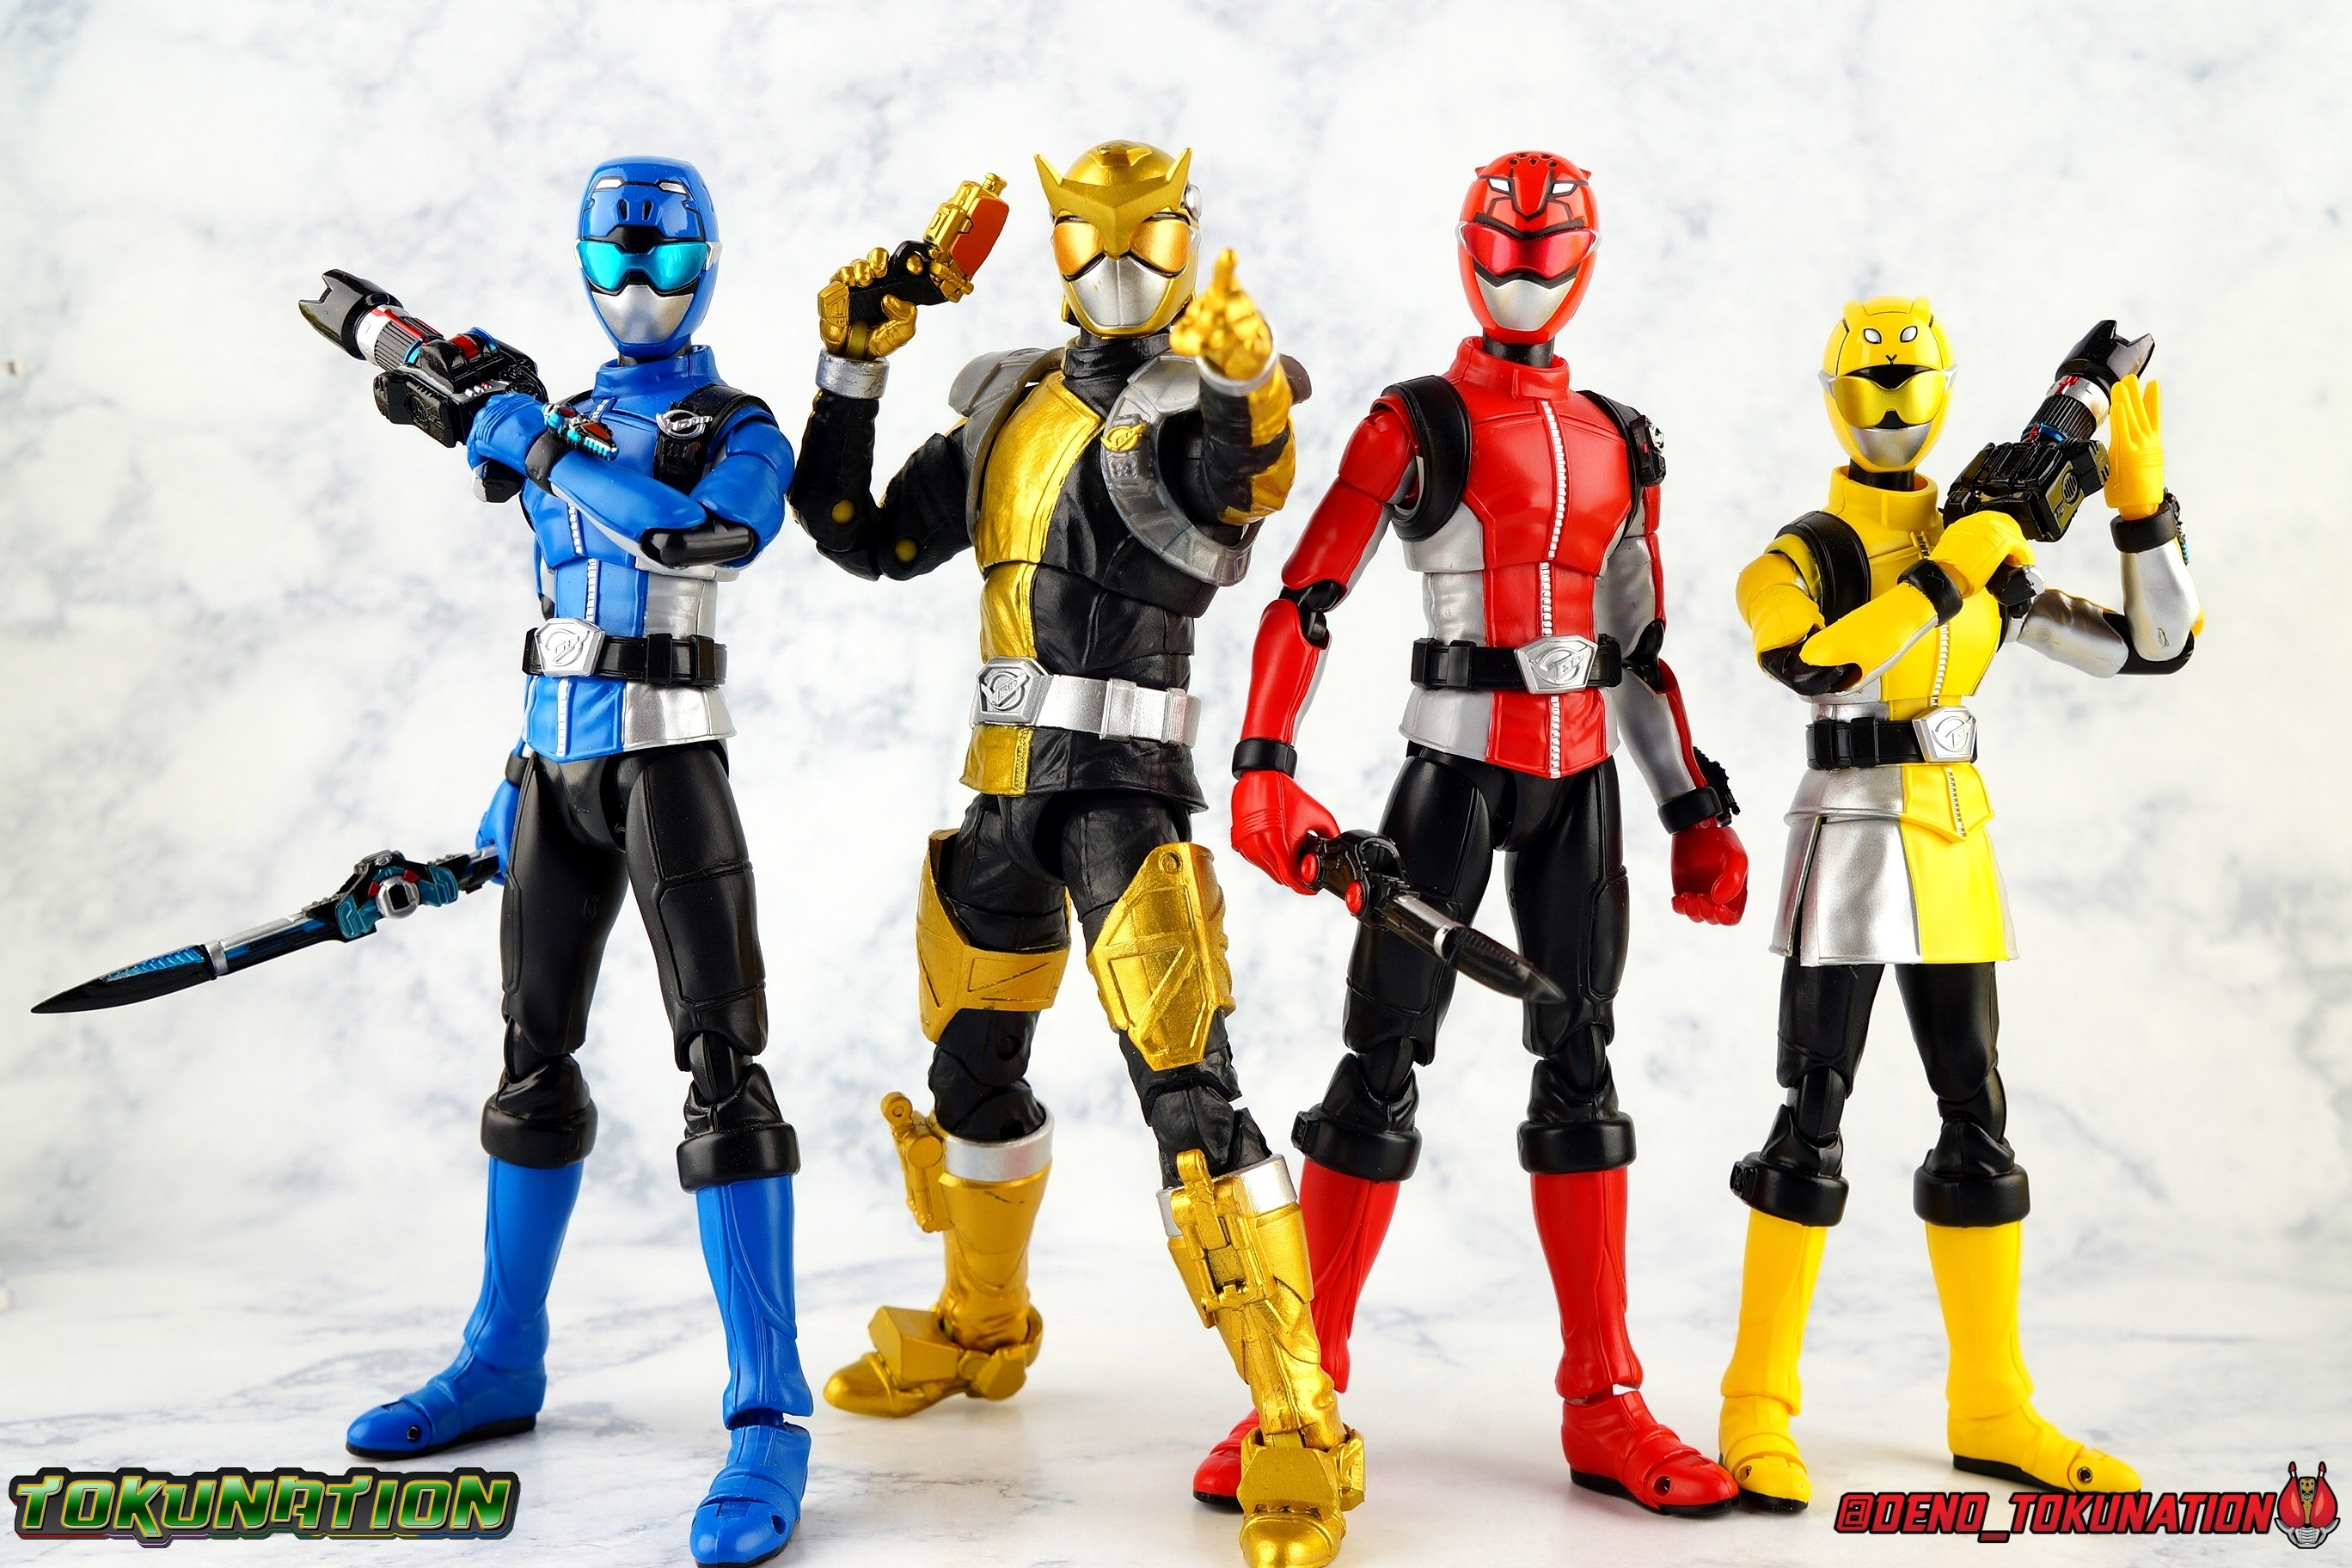 Power Rangers Beast Morphers - Tokunation